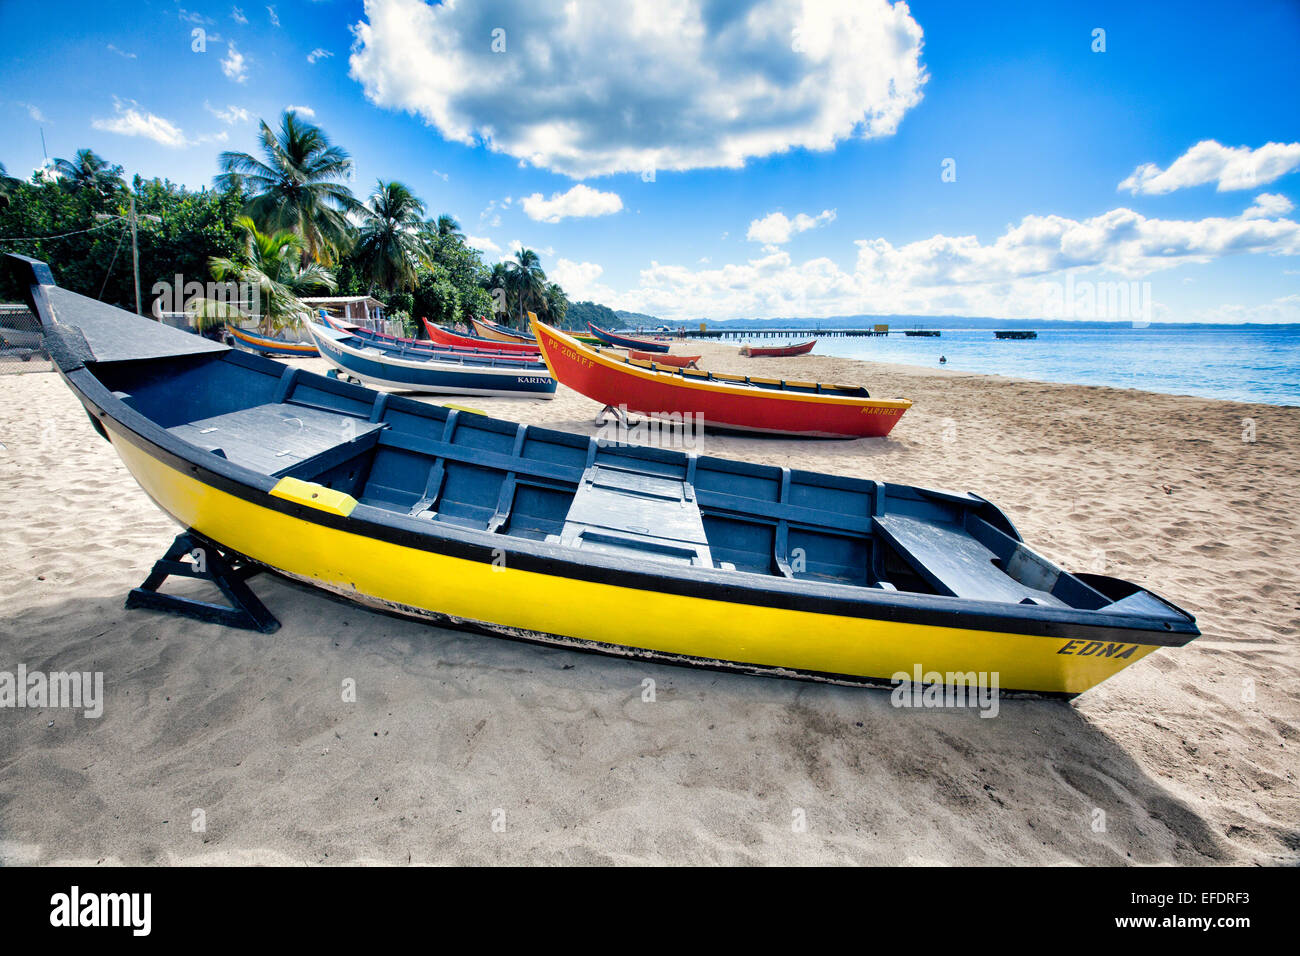 Low Angle View of Colorful, Small Wooden, Fishing Boats on a Caribbean Beach, Crashboat Beach, Aguadilla, Puerto - Stock Image